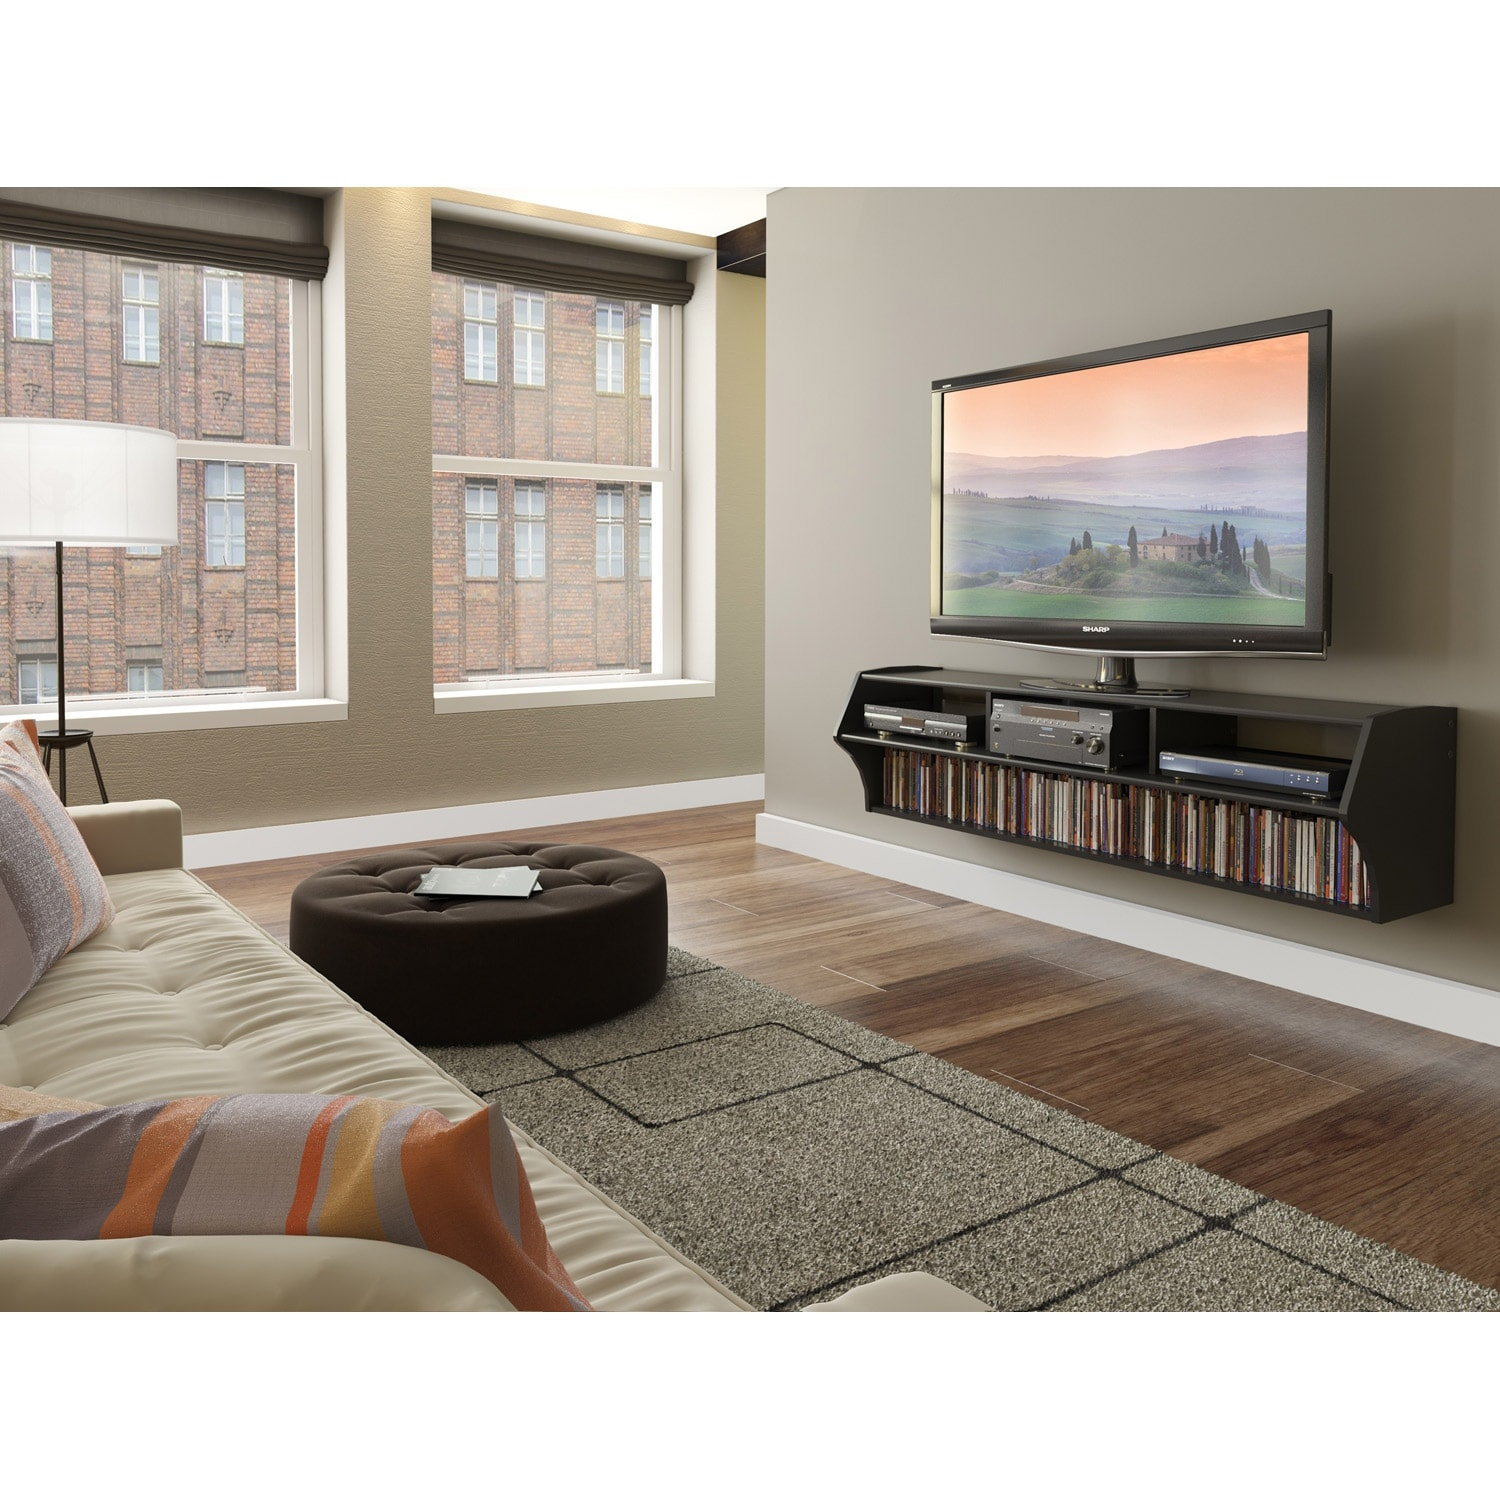 Broadway Altus Plus Black 58 Inch Floating Tv Stand Free Shipping Today 7986250